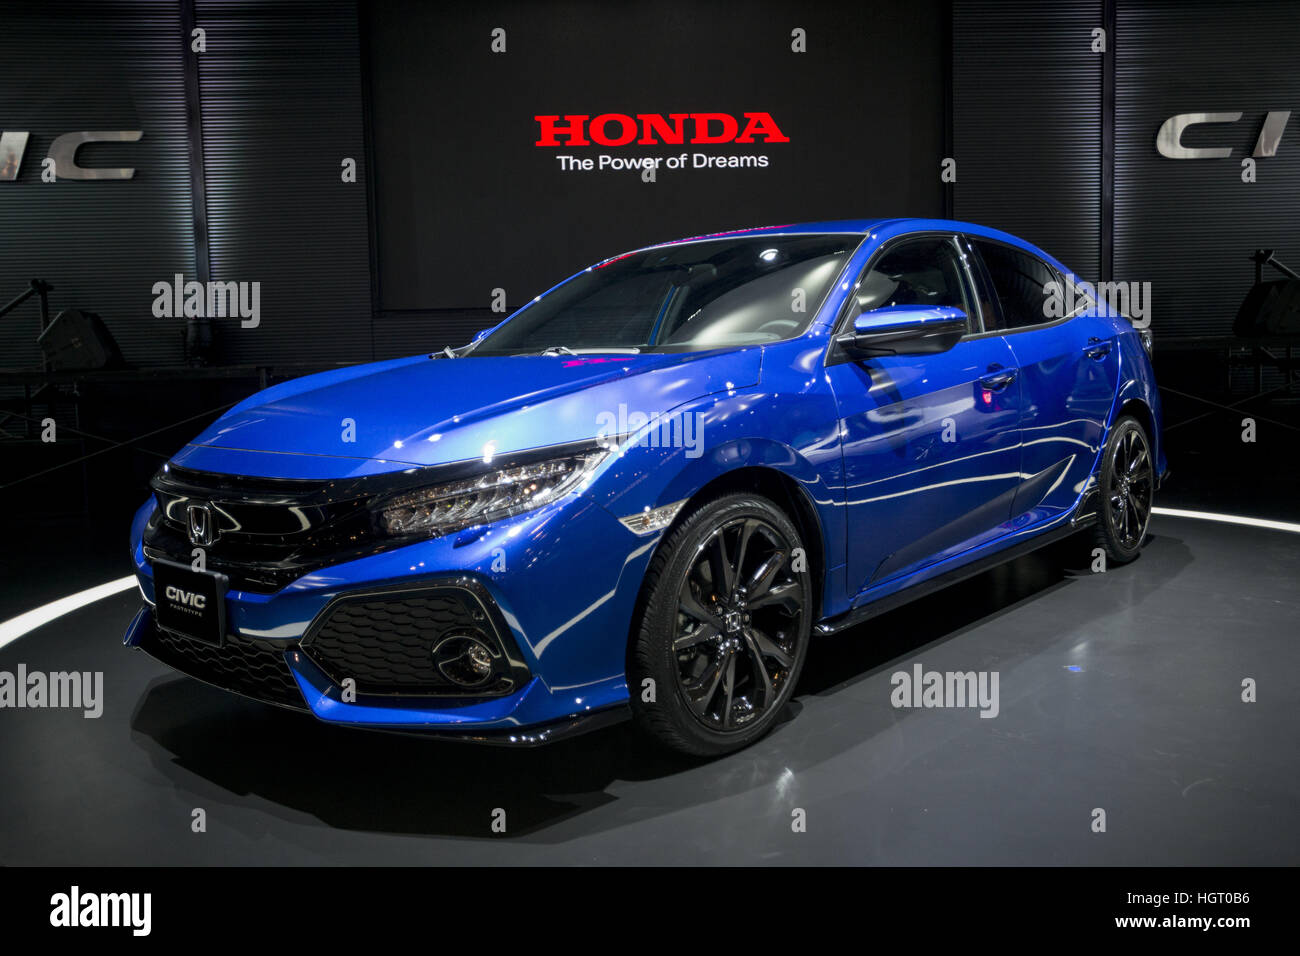 Tokio, Japan. 13. Januar 2017. Der HONDA CIVIC auf dem Display an ...